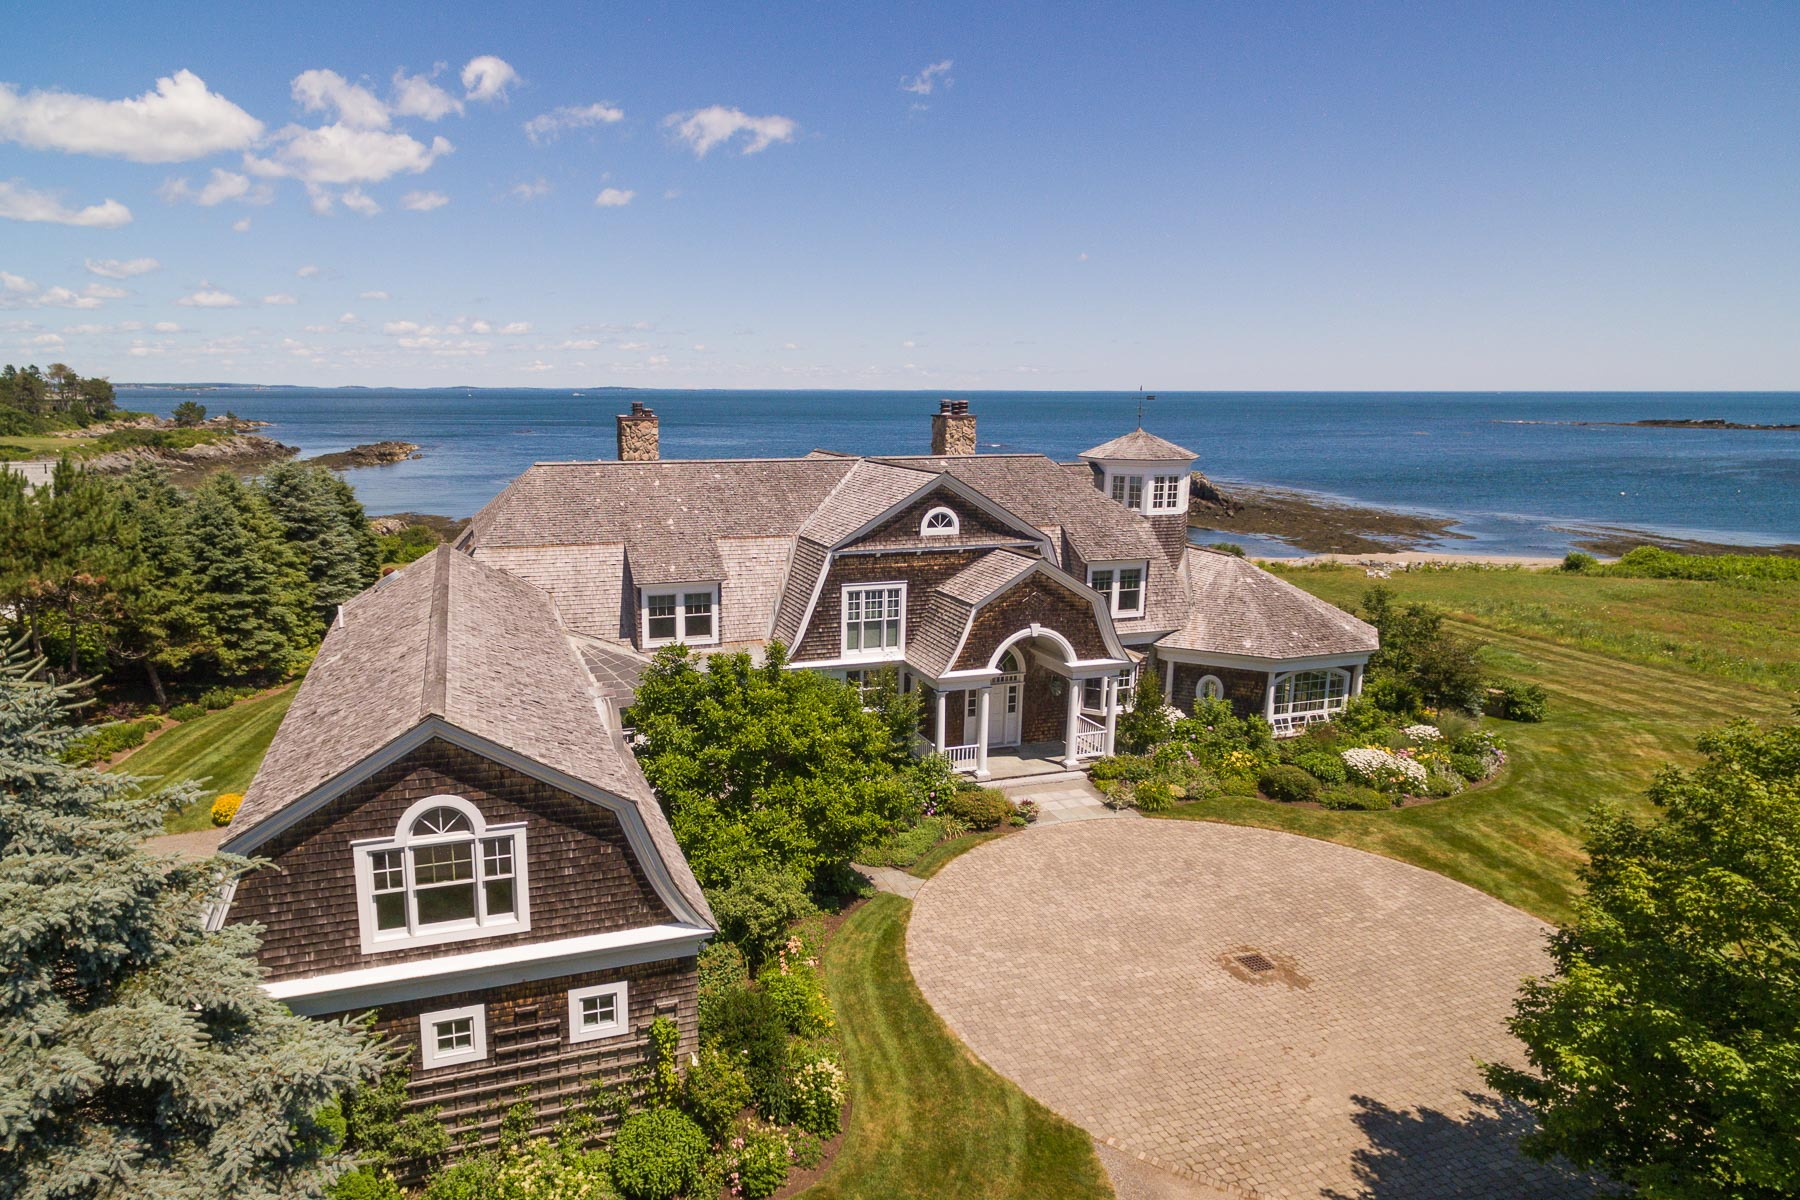 Single Family Home for Sale at 413 Pulpit Rock Road Cape Elizabeth, Maine 04107 United States